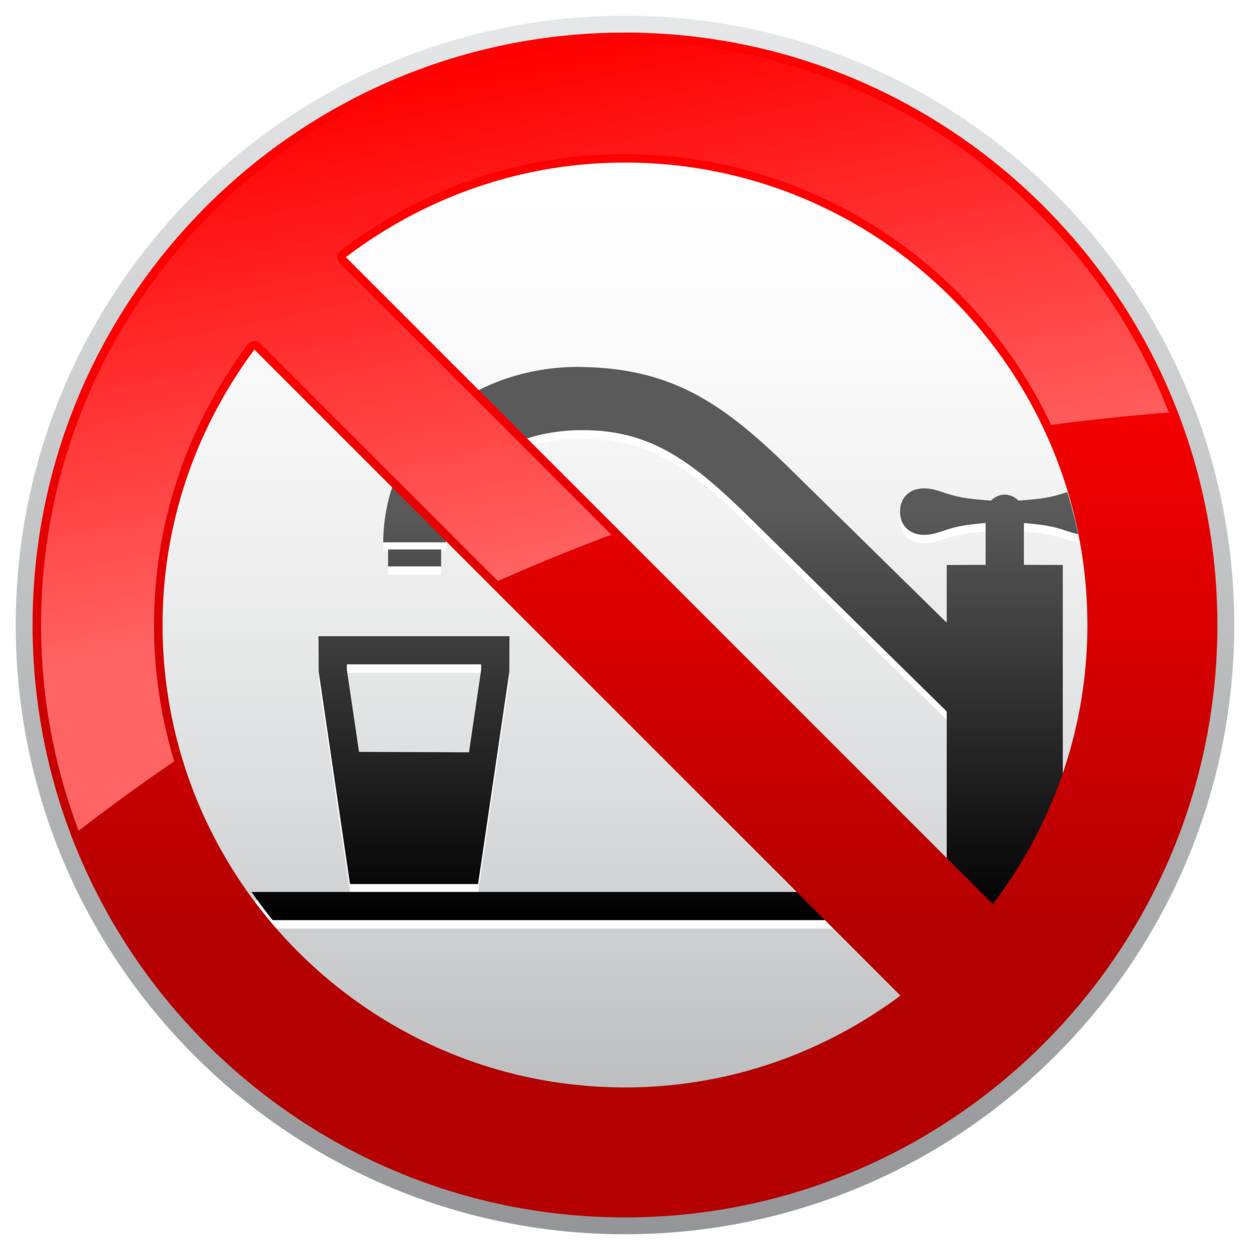 Not Drinking Water Prohibition Sign PNG Clipart